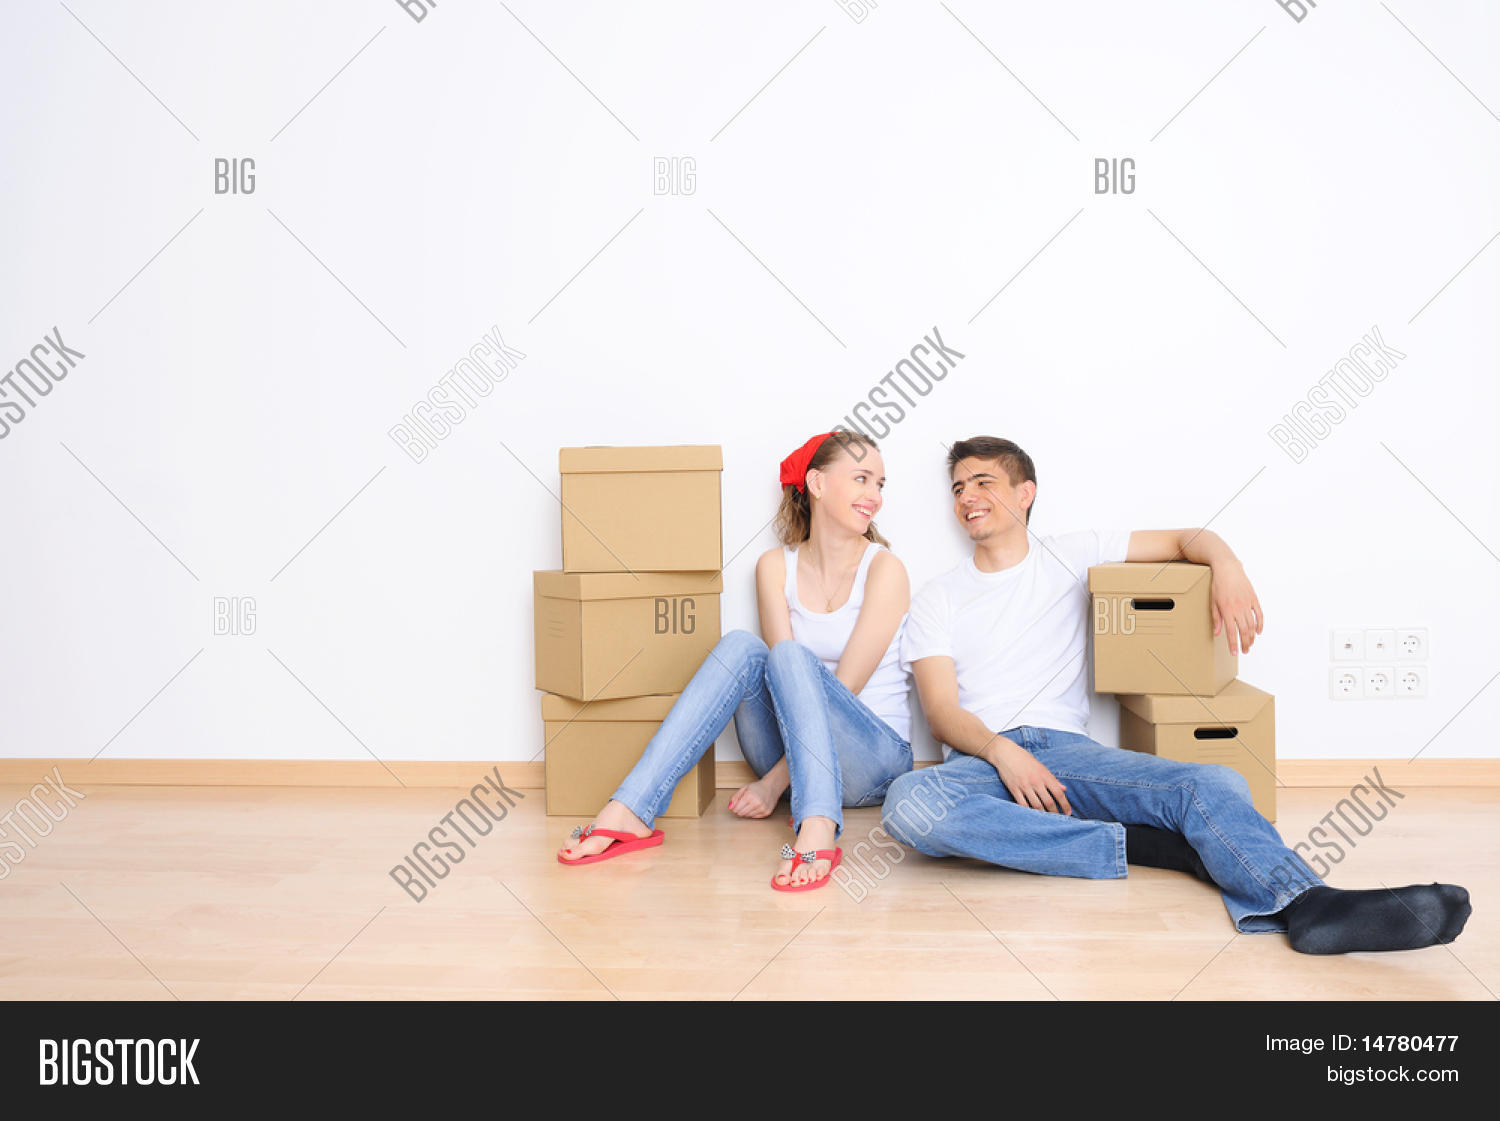 activity,adult,apartment,box,cardboard,carrying,carton,casual,caucasian,cheerful,copy-space,copyspace,couple,domestic,estate,family,female,floor,girl,holding,home,house,indoors,interior,laugh,love,man,moving,moving office,new,new home,office,one,packing,people,person,property,real,relax,relocation,resting,smiling,stack,stacking,together,woman,young,young couple,young couple in love